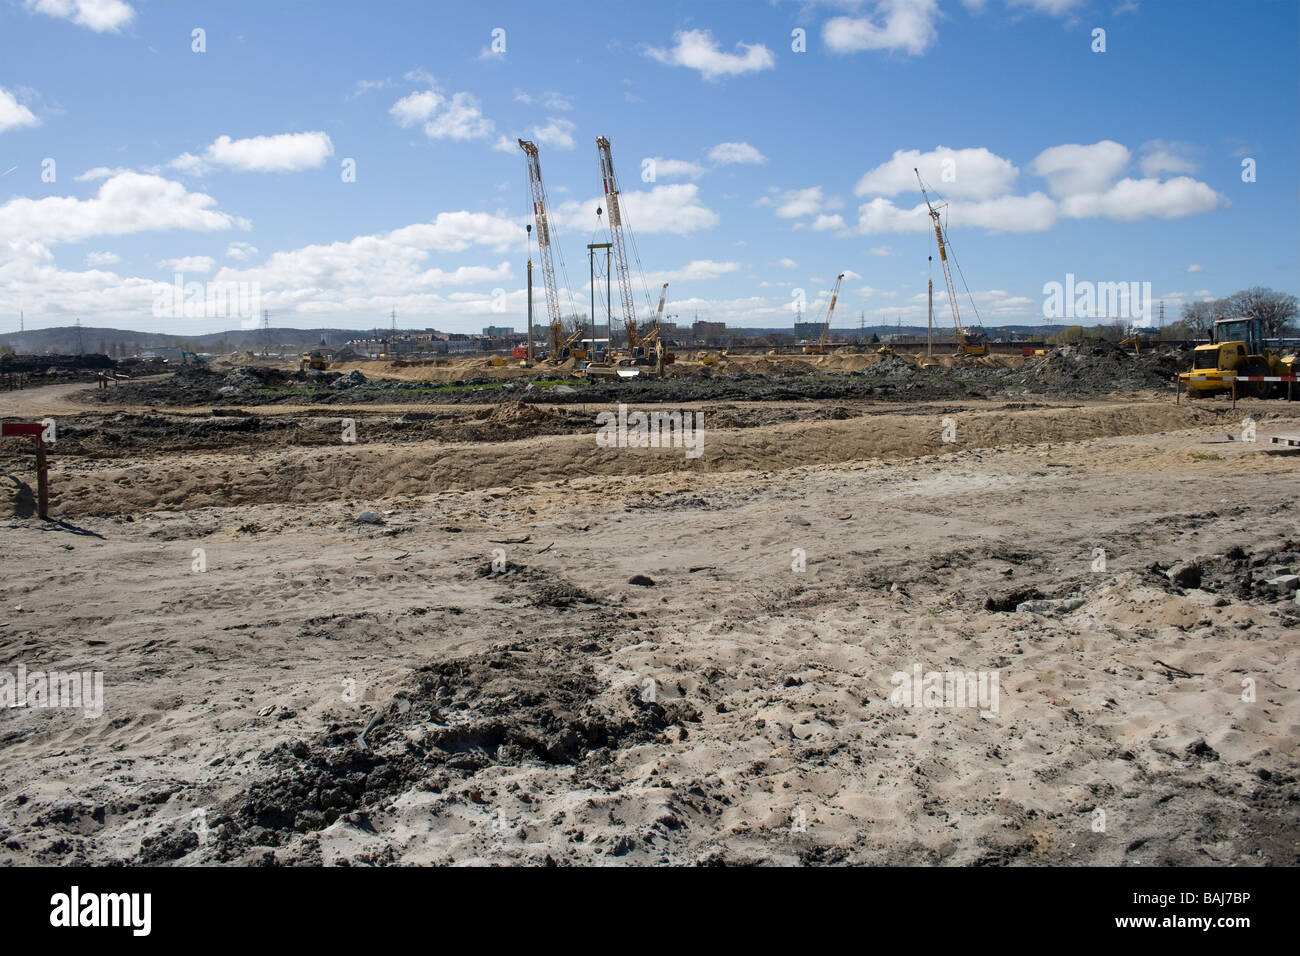 Letniewo, Baltic Arena is being built on the area seen in the picture. Stock Photo